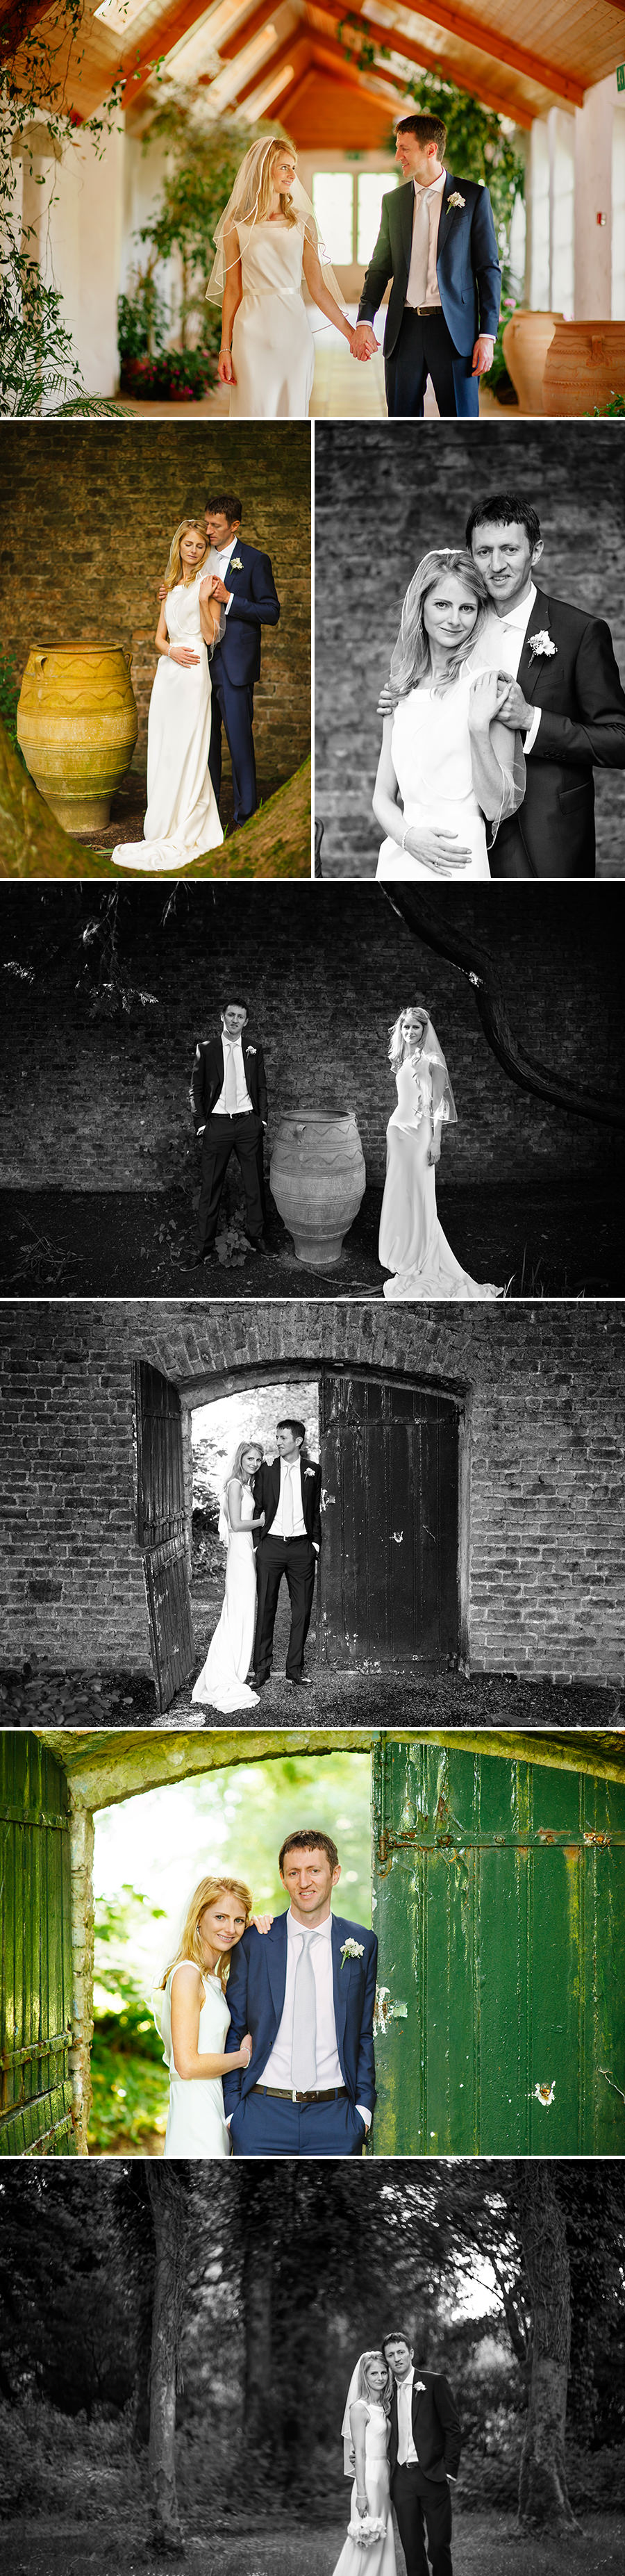 13_the best wedding photographer_creative wedding photography_rathsallagh house hotel wedding